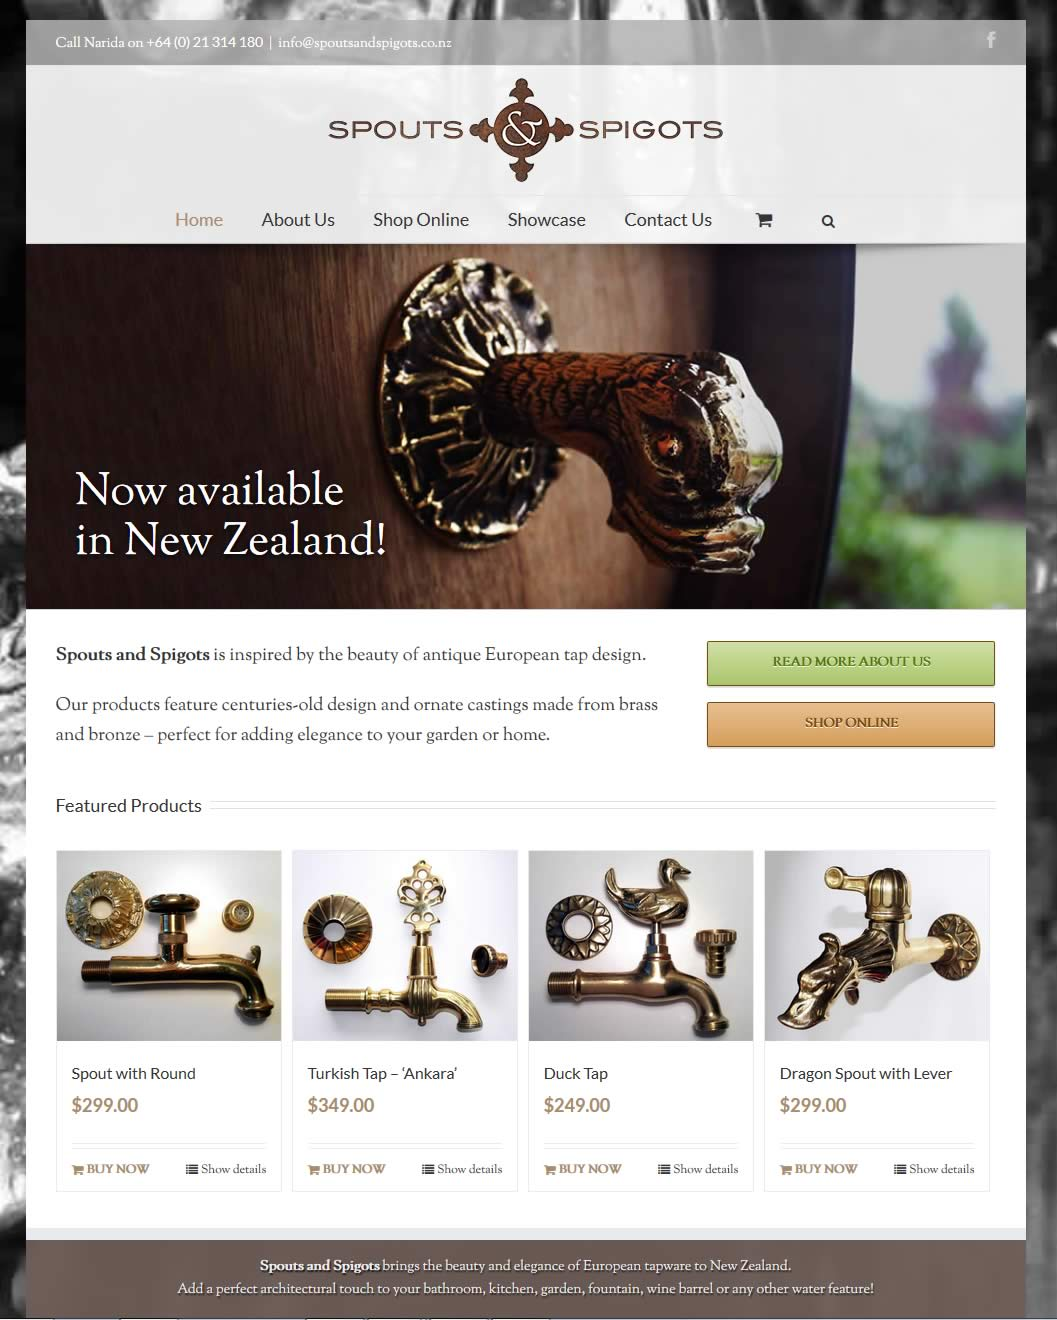 Spouts and Spigots website